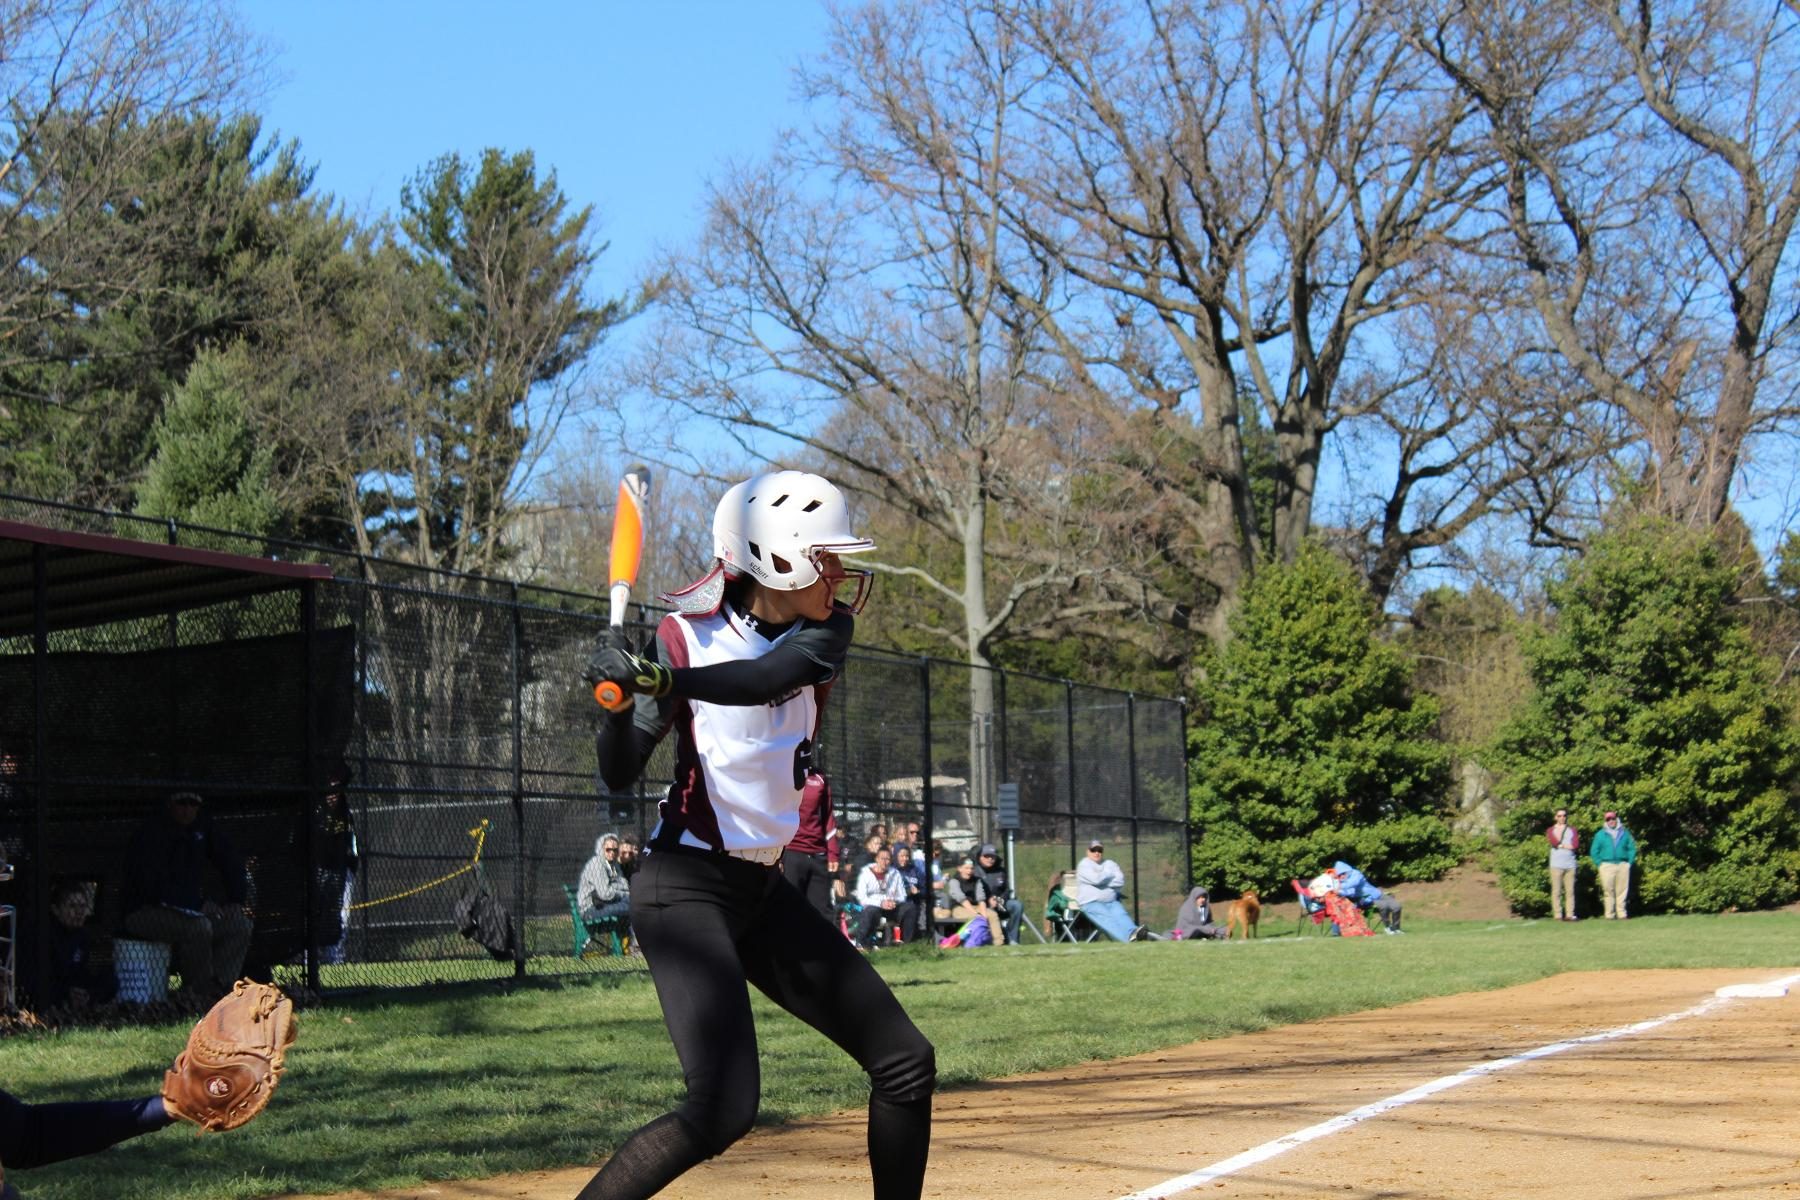 Devils Softball Closes Out The Season On The Road At Dominican